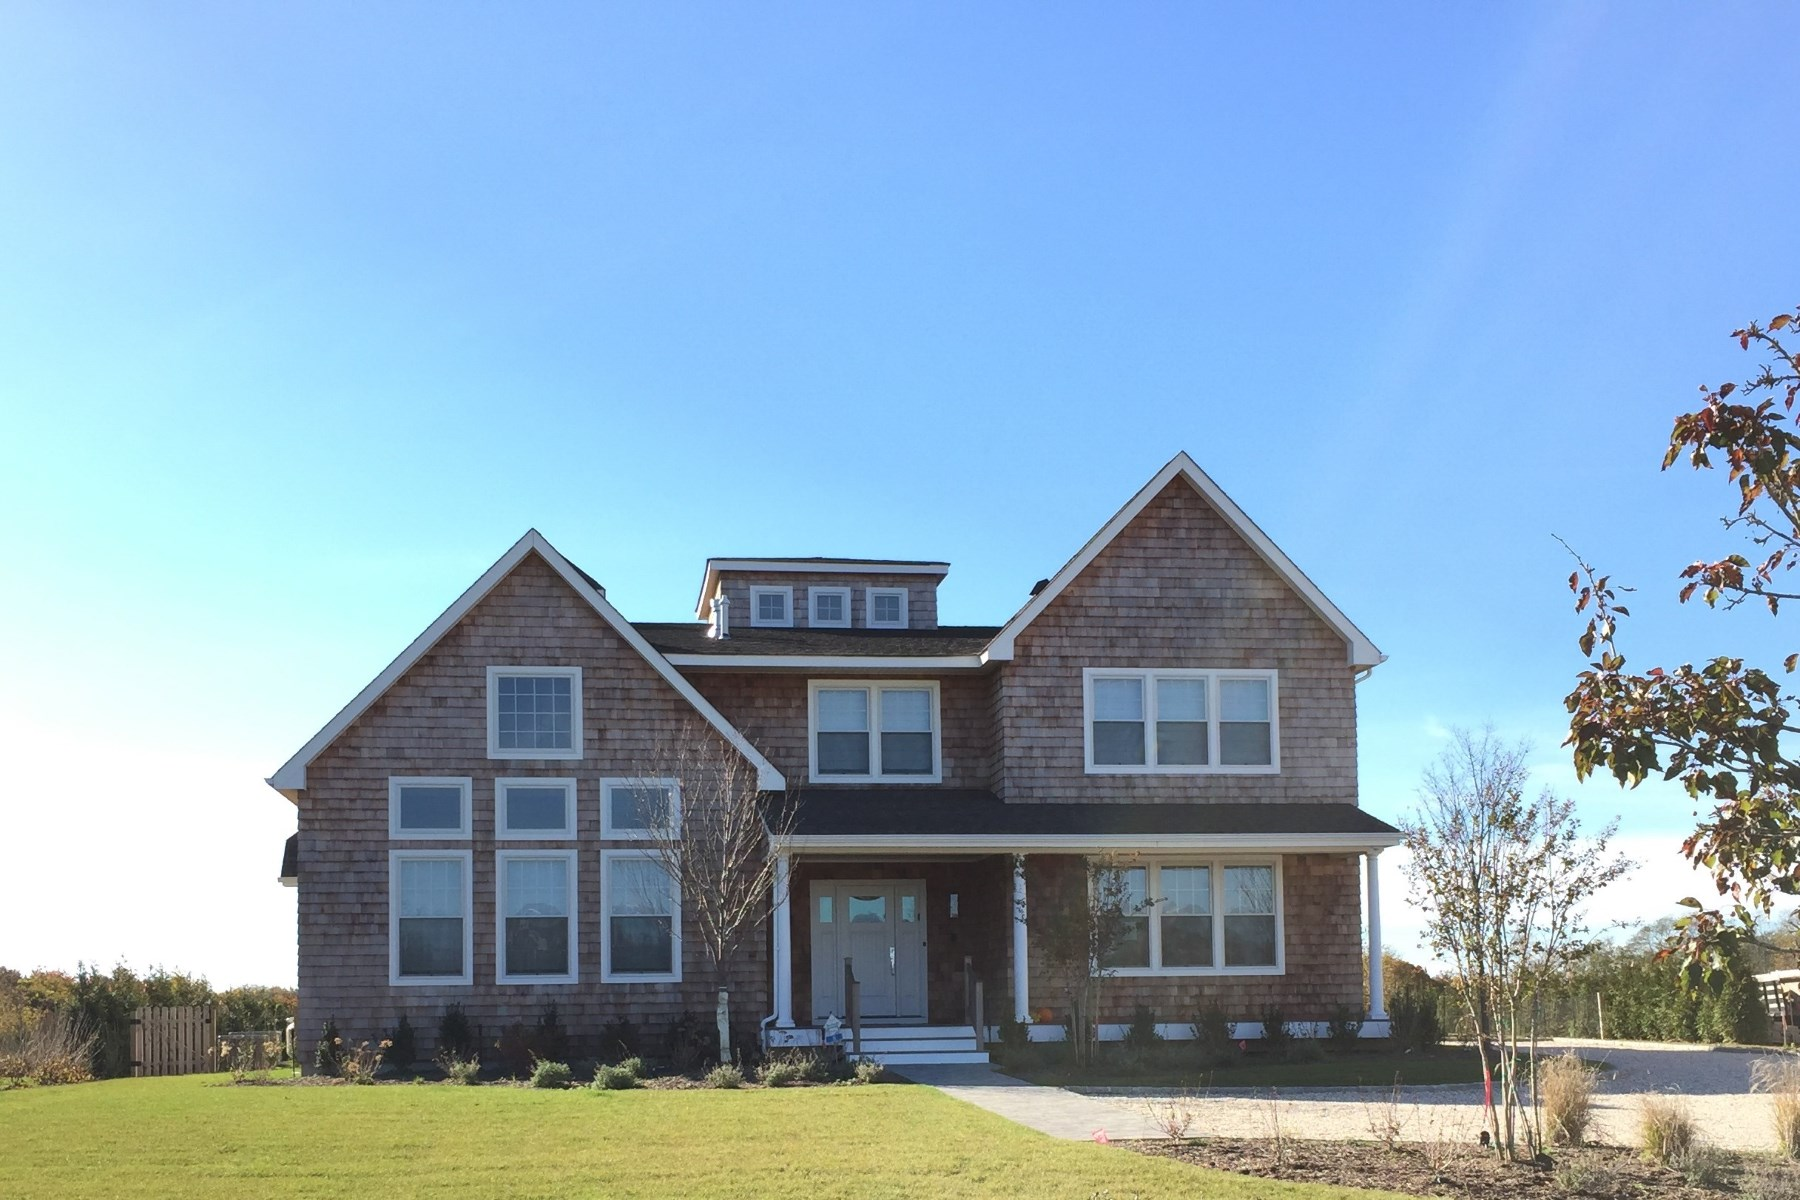 Villa per Vendita alle ore Southampton Meadows Estates - T Model 27 Summer Lane Lot #12 Southampton, New York 11968 Stati Uniti